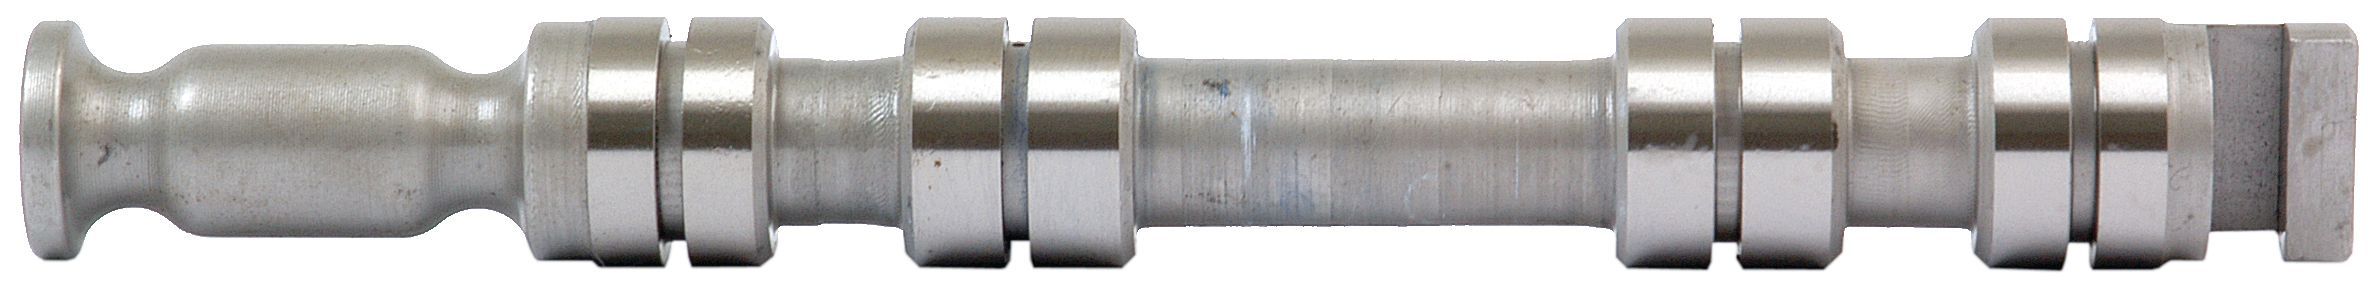 FORD VALVE SPINDLE-BLUE/WHITE 17392